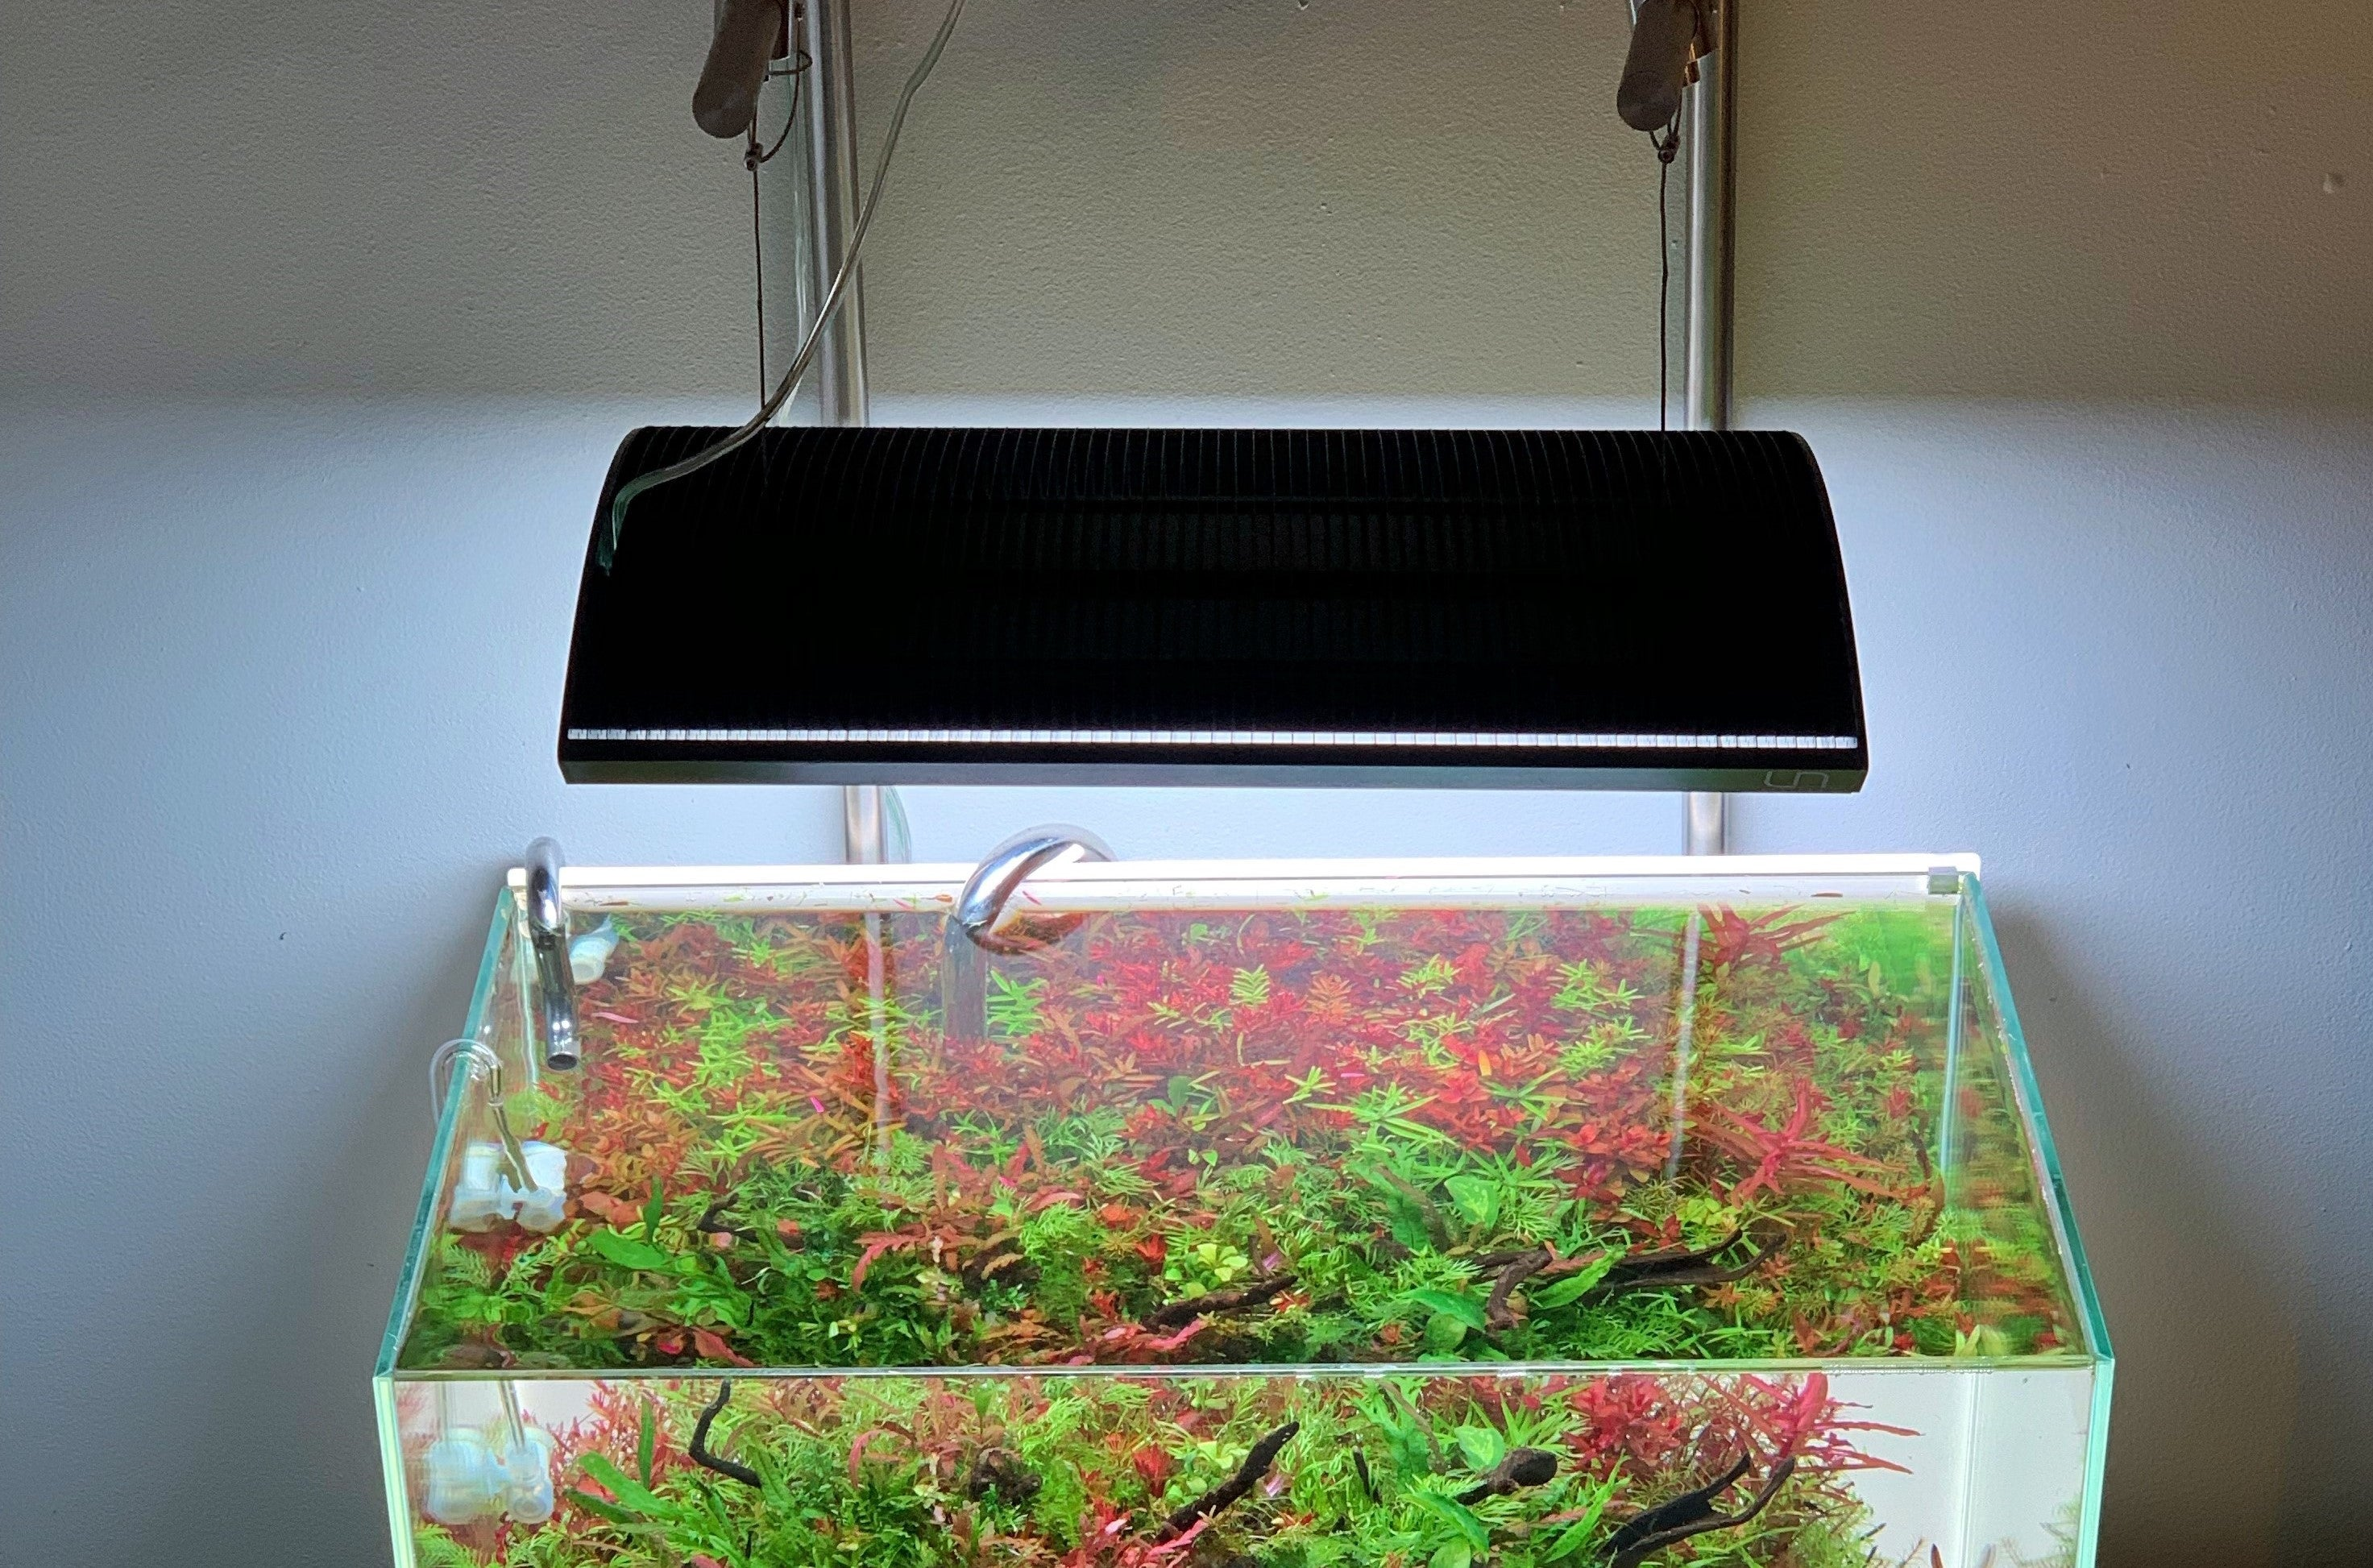 Lighting Requirements for a Planted Aquarium